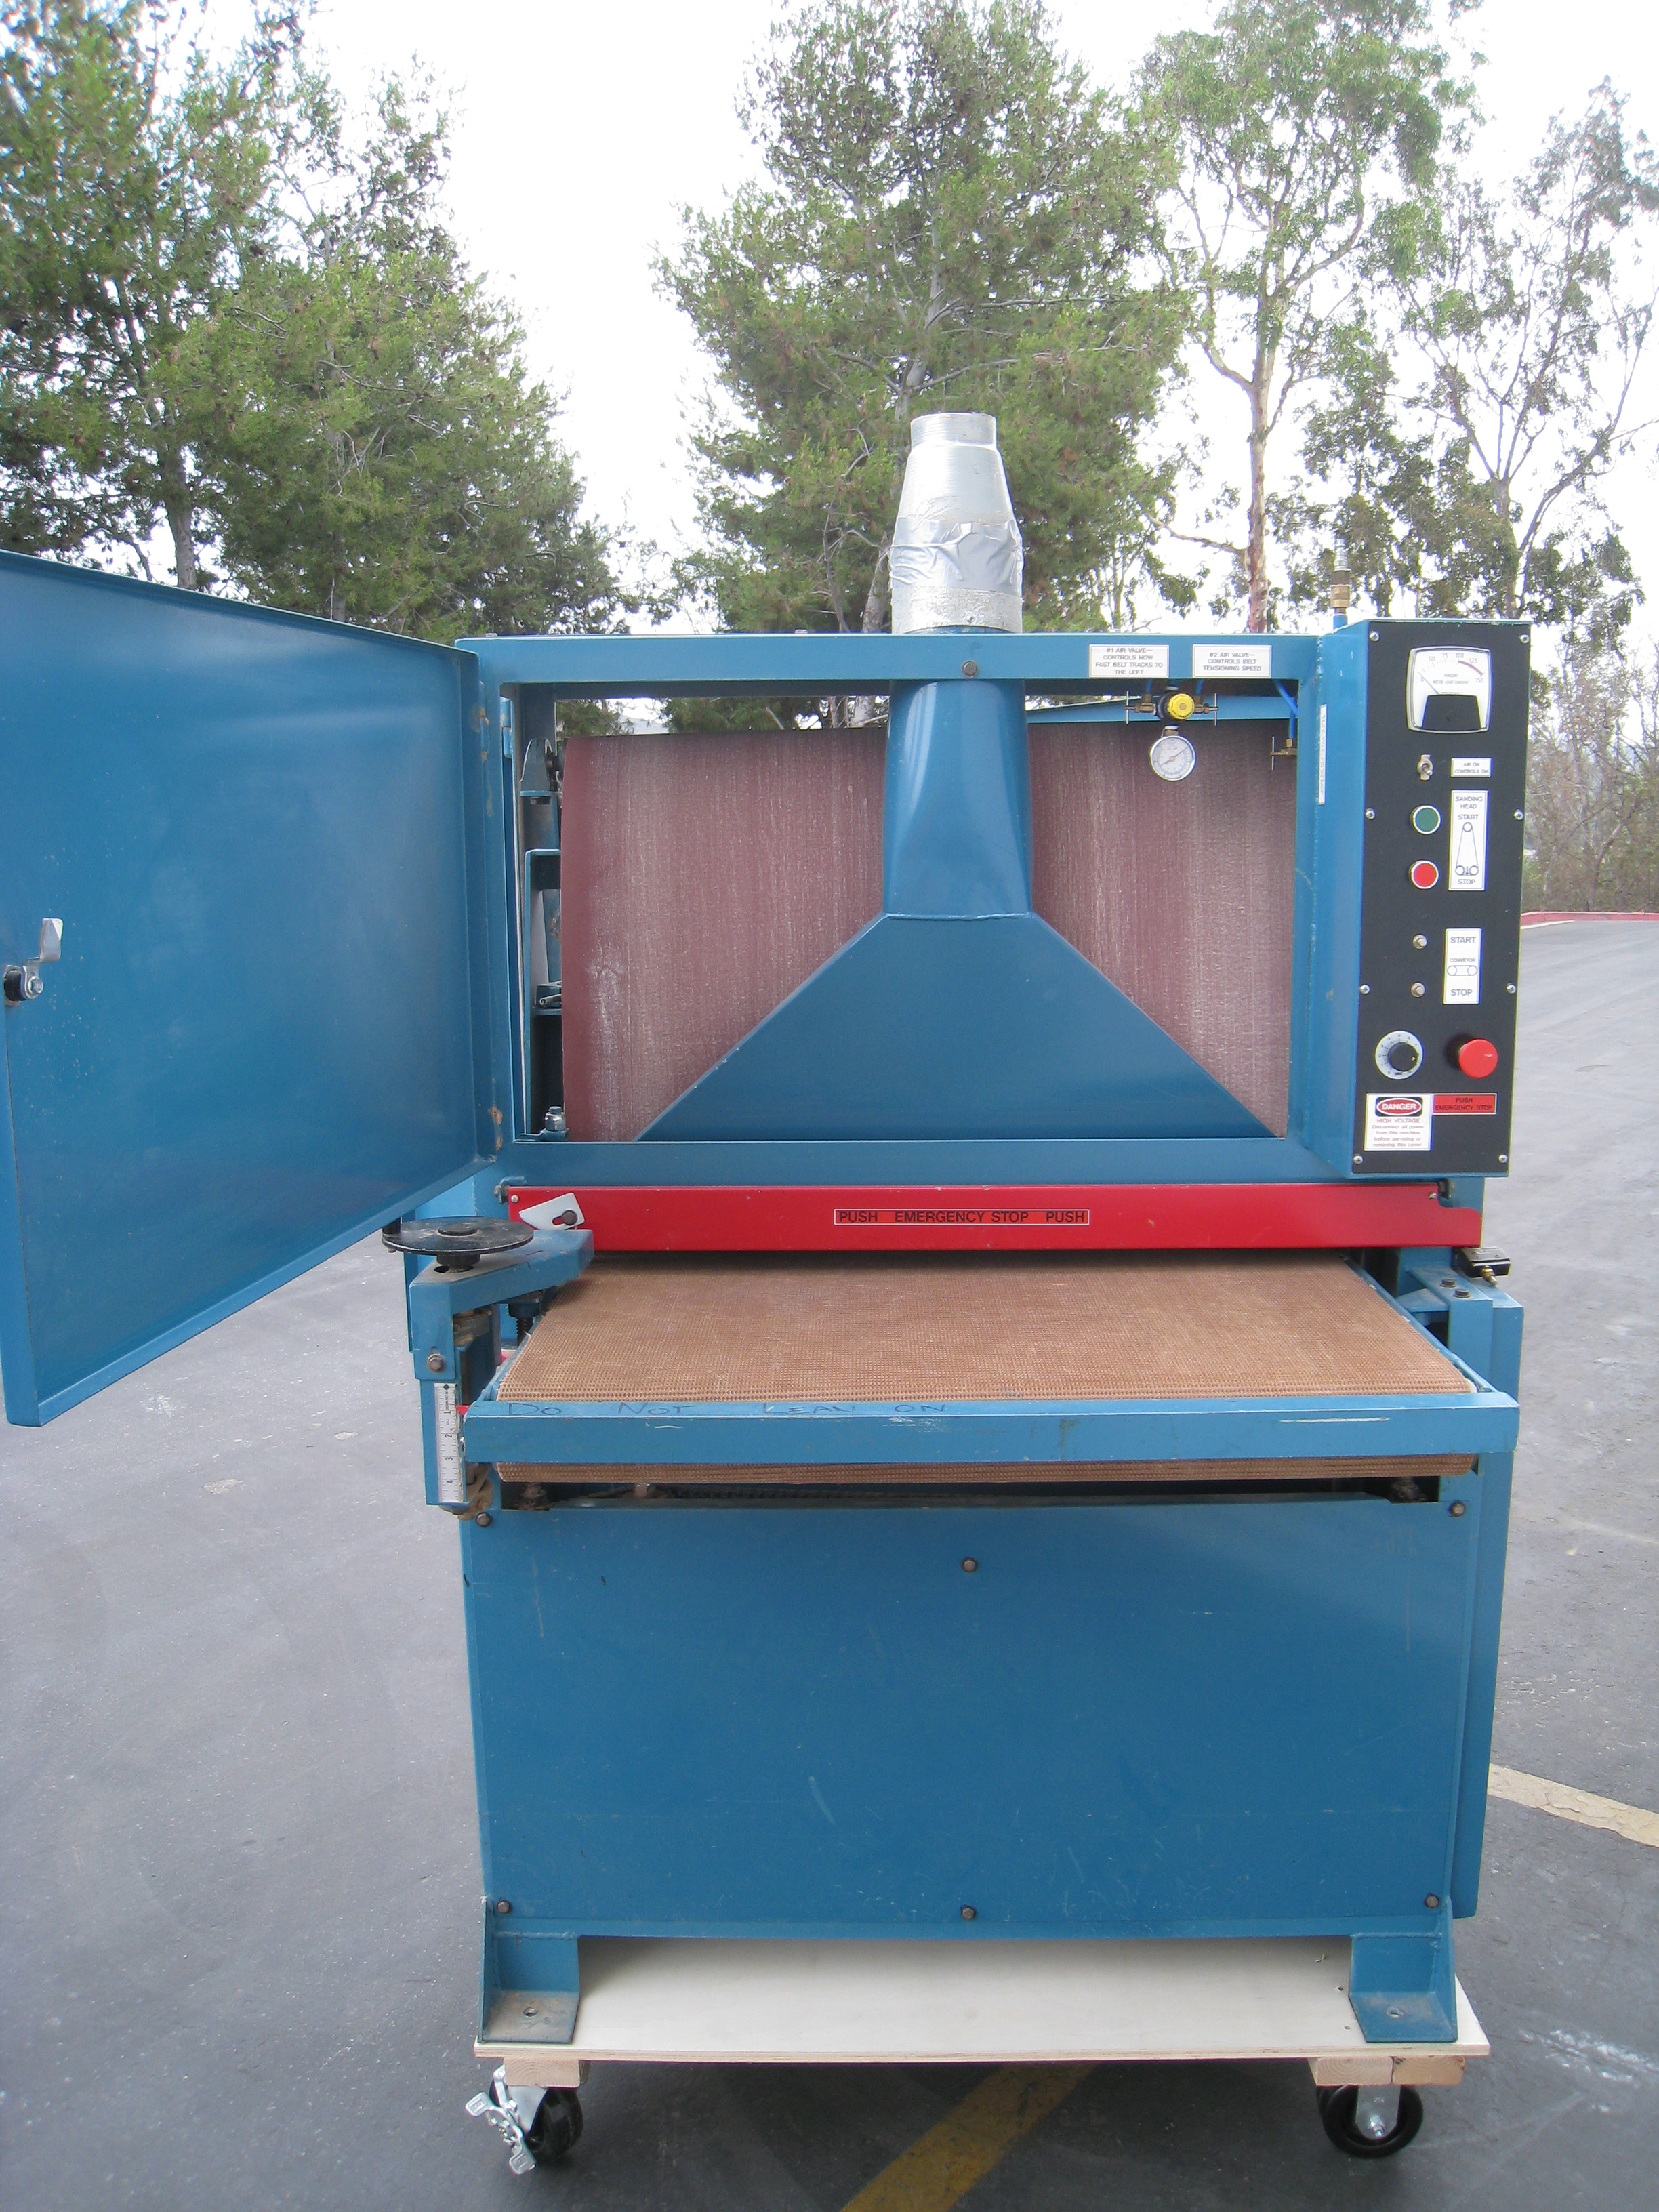 buy socal used woodworking machinery socalmachinery